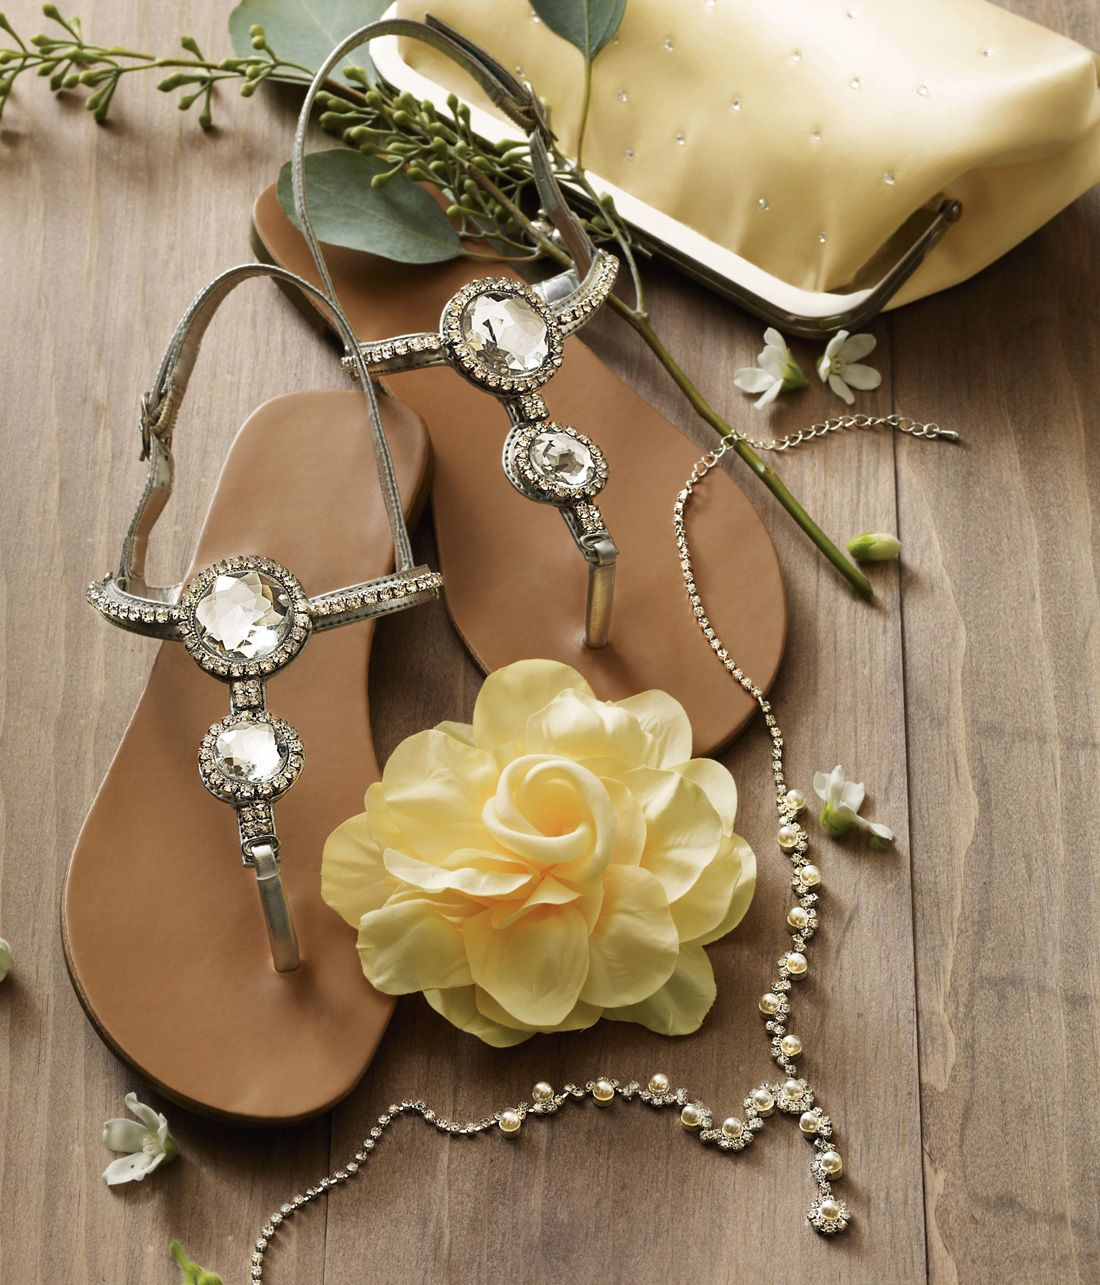 35c70149da67d Beach wedding  Try the  Lucia  sandal for your  maids so they stay  comfortable in the sand!  davidsbridal